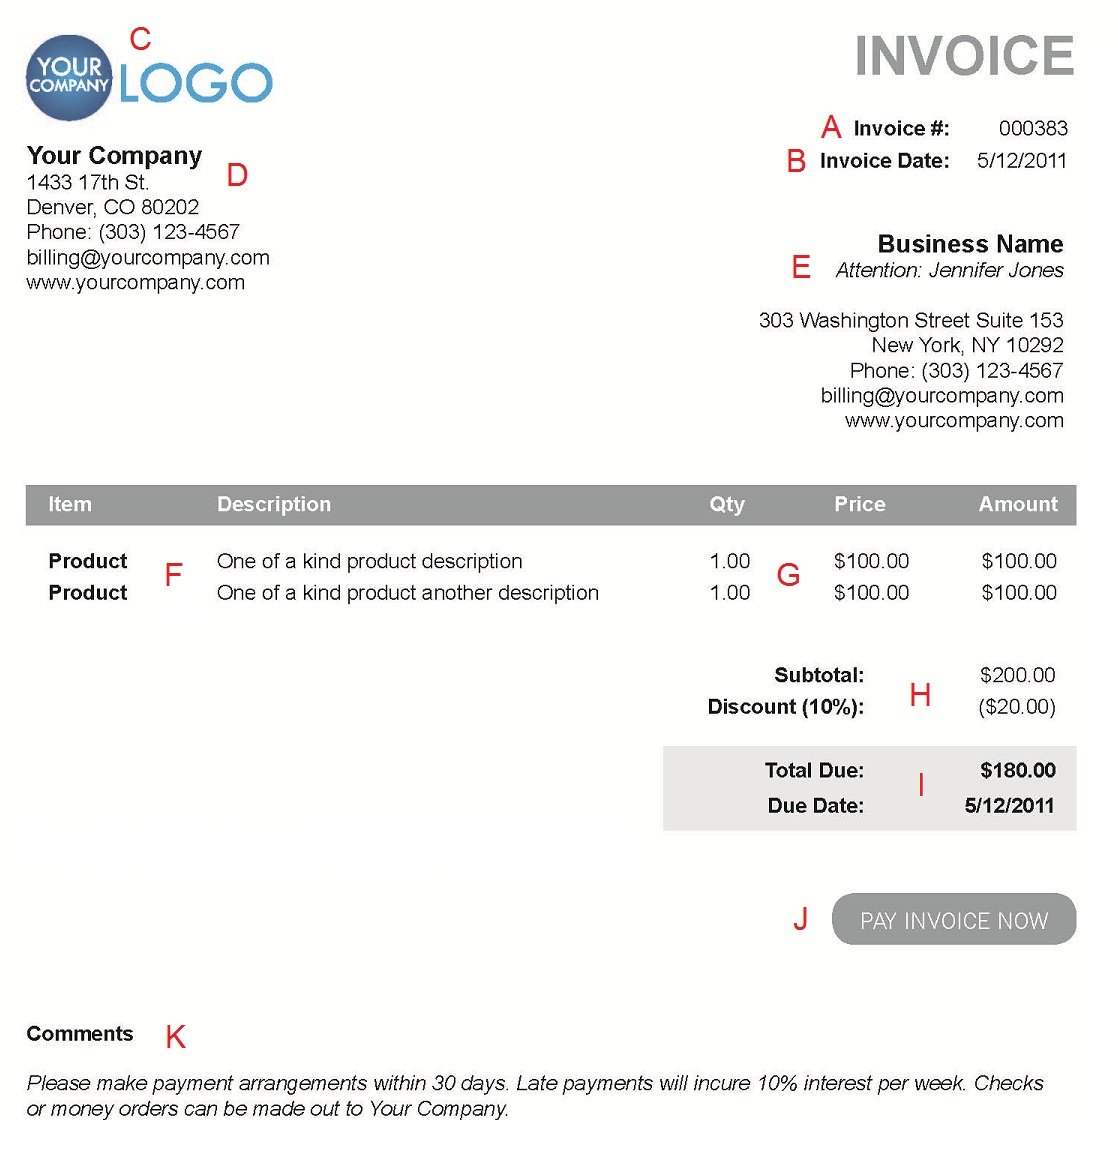 Picnictoimpeachus  Unusual The  Different Sections Of An Electronic Payment Invoice With Excellent A  With Delightful Proforma Invoice Download Also Free Invoice Forms Templates In Addition Invoice Factoring Costs And Invoice Template Services Rendered As Well As How To Invoice For Services Additionally Terms Invoice From Paysimplecom With Picnictoimpeachus  Excellent The  Different Sections Of An Electronic Payment Invoice With Delightful A  And Unusual Proforma Invoice Download Also Free Invoice Forms Templates In Addition Invoice Factoring Costs From Paysimplecom